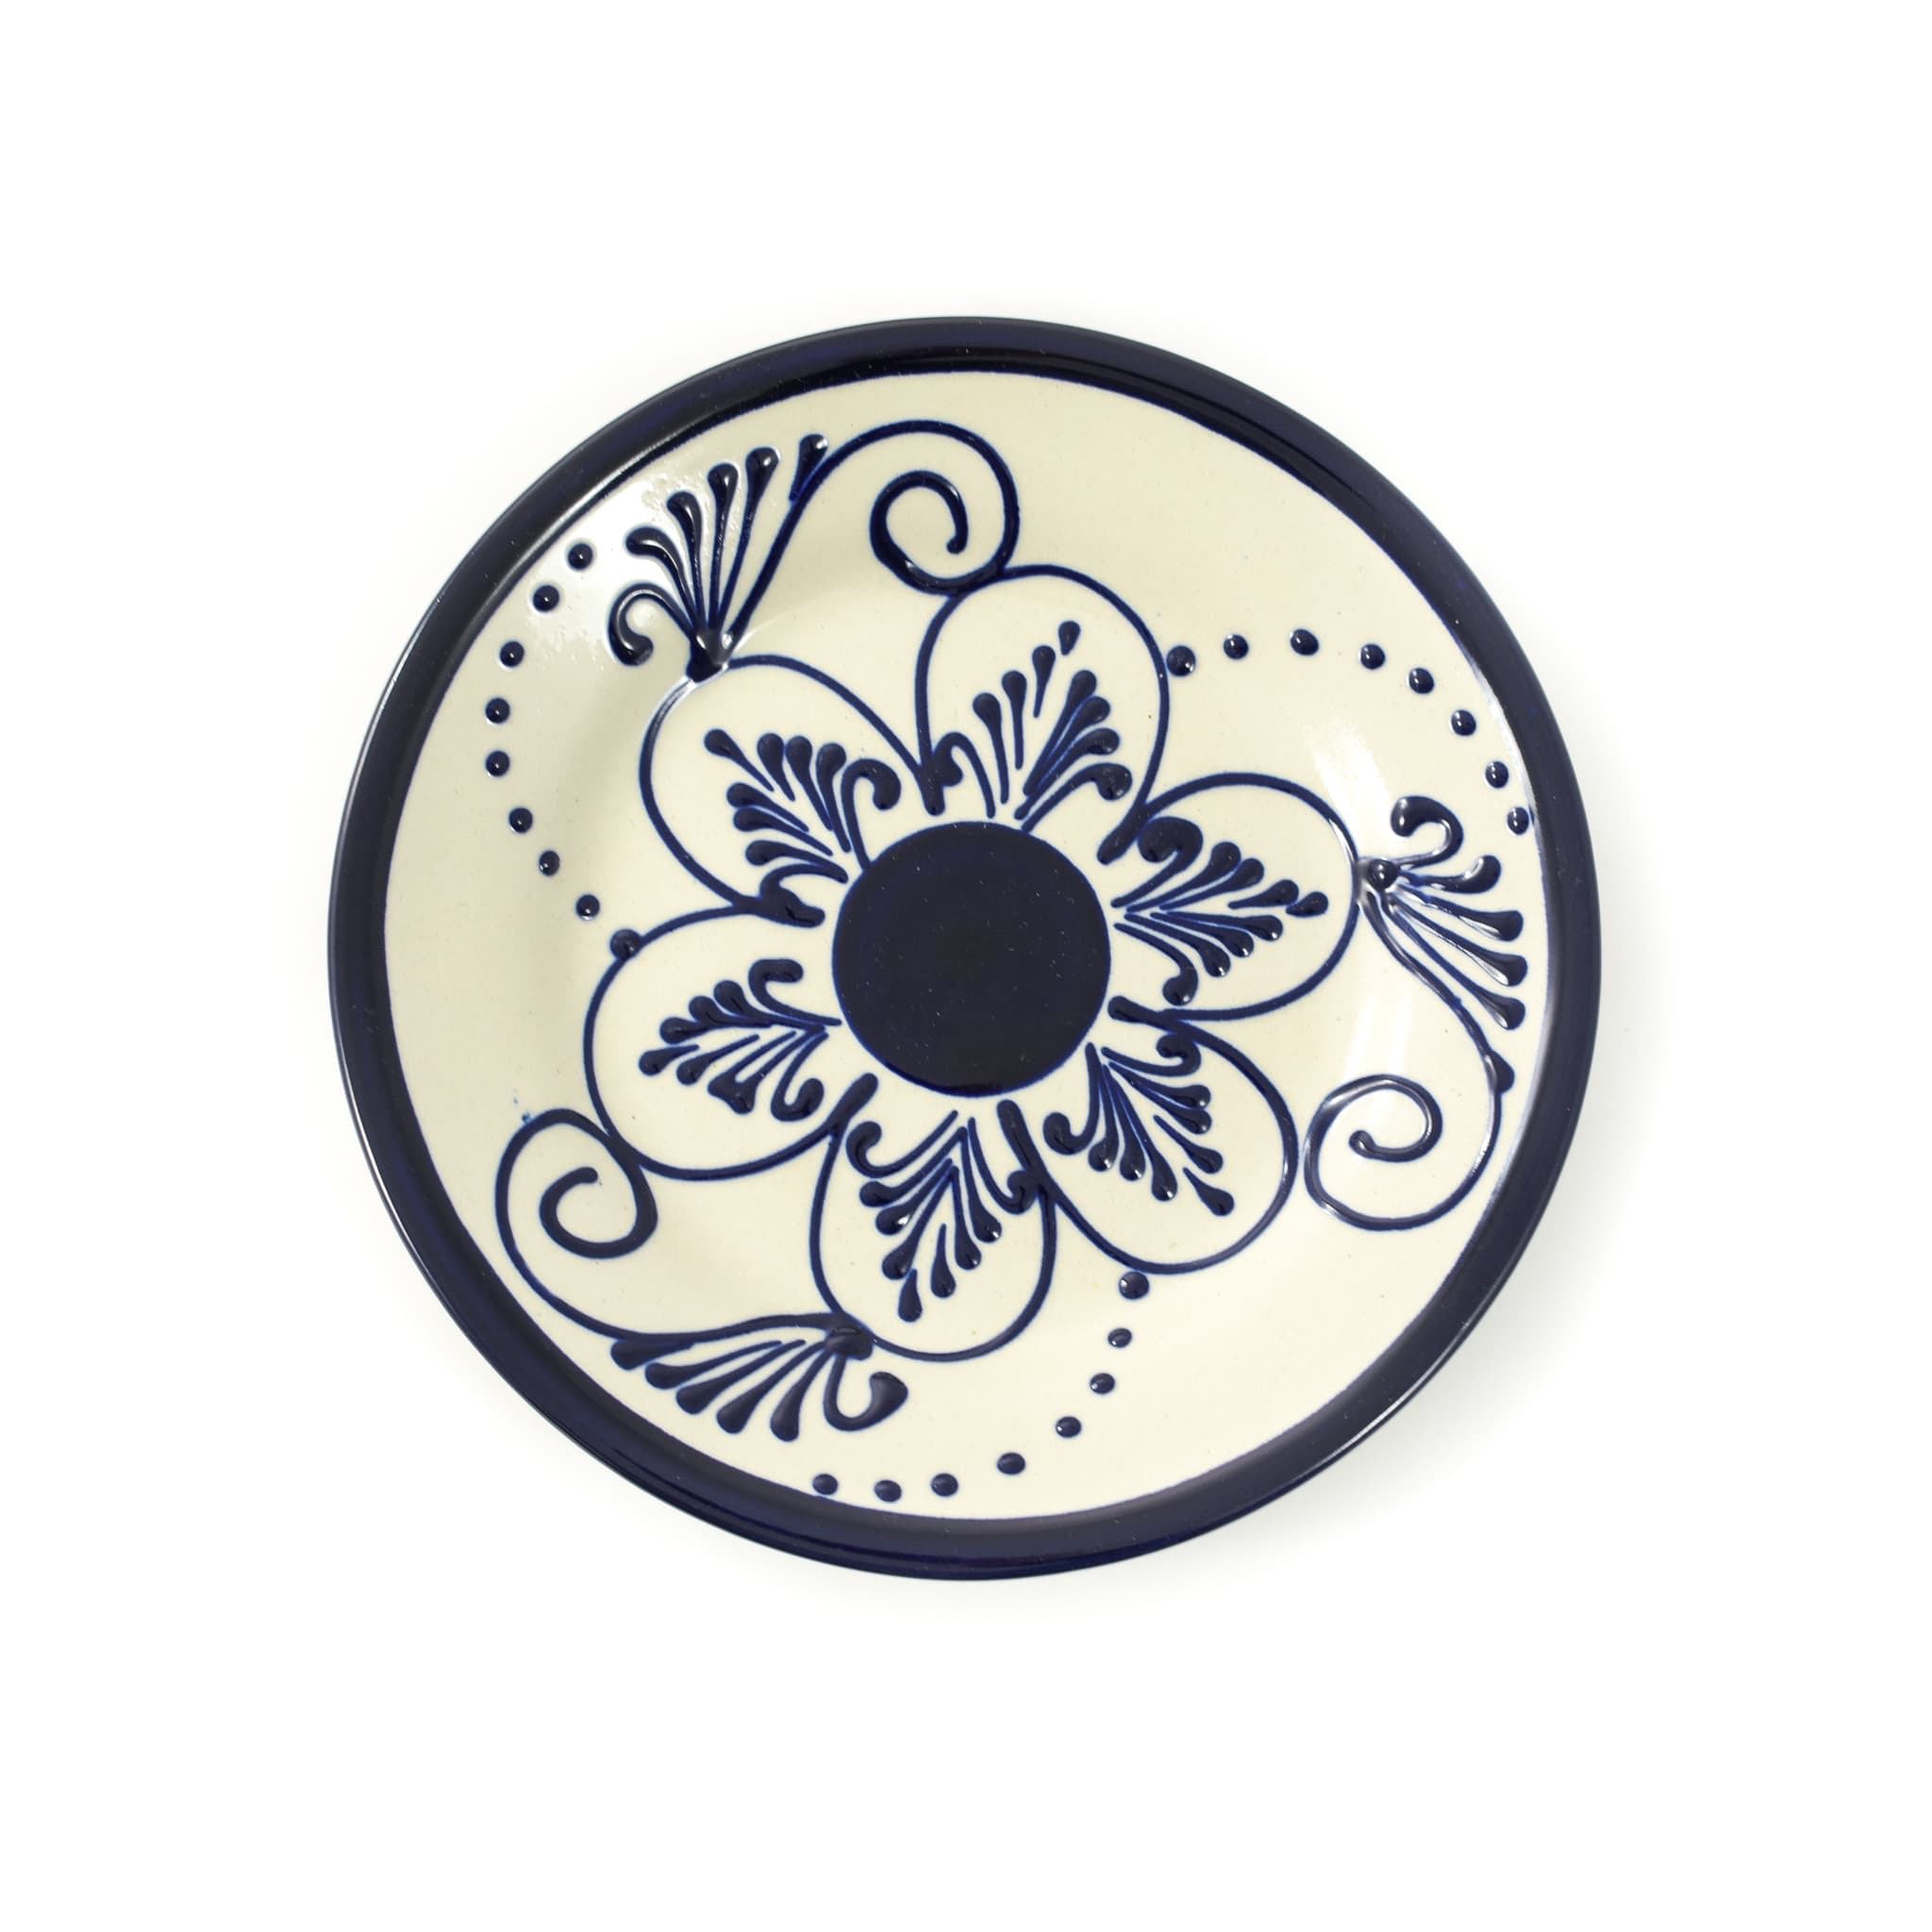 Sous Chef Andalucia Small Plate 15cm Painted Spanish Tableware